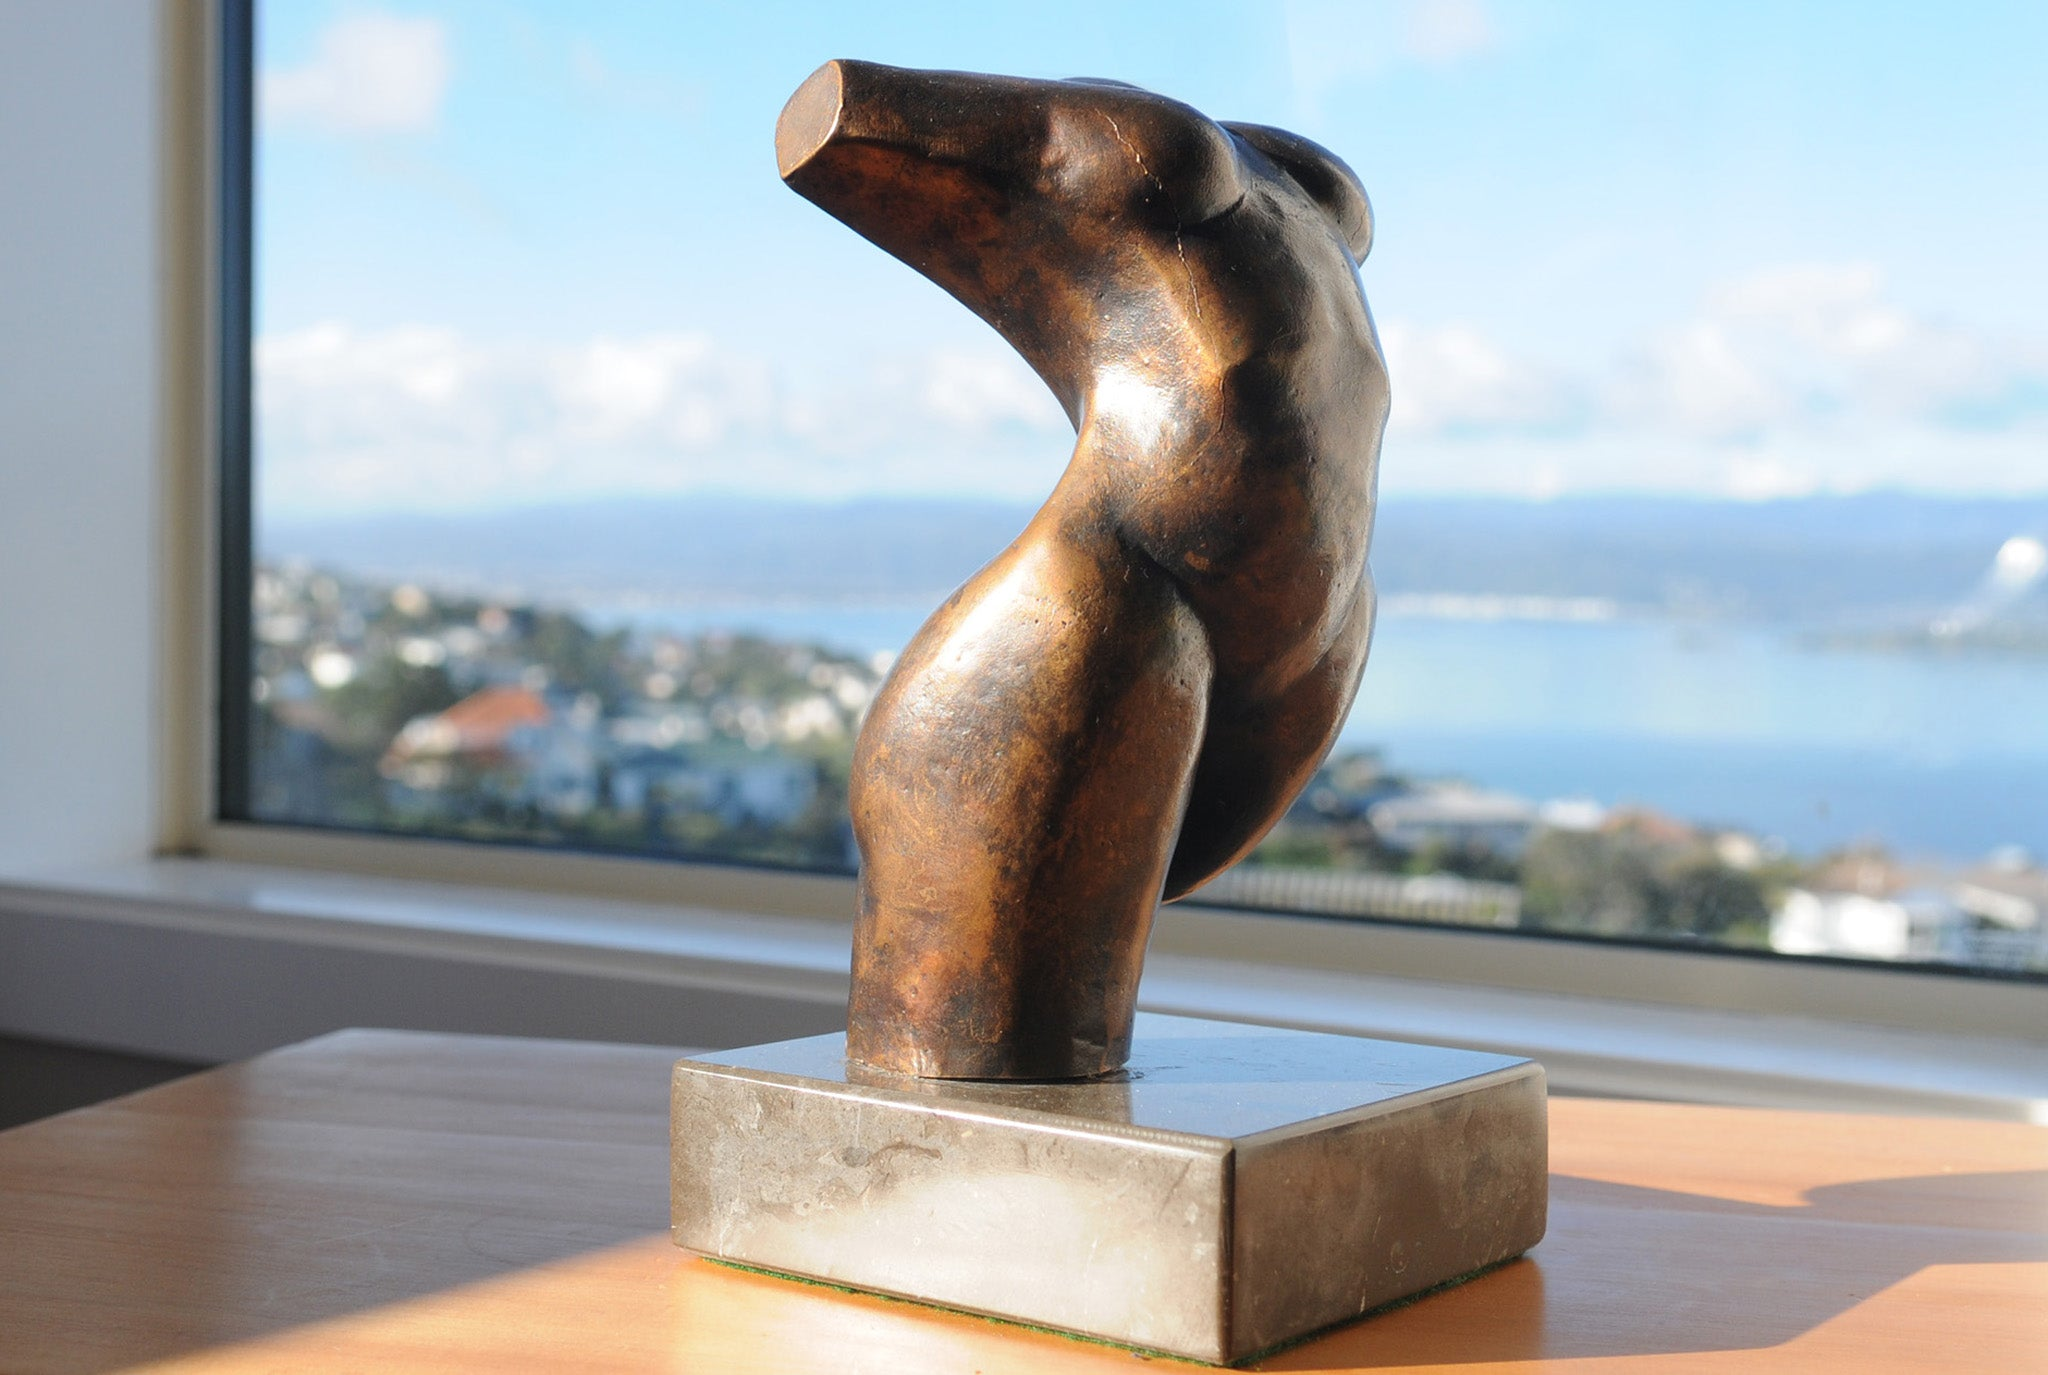 Abstract figurative bronze sculpture by Stephen Williams | New Zealand.